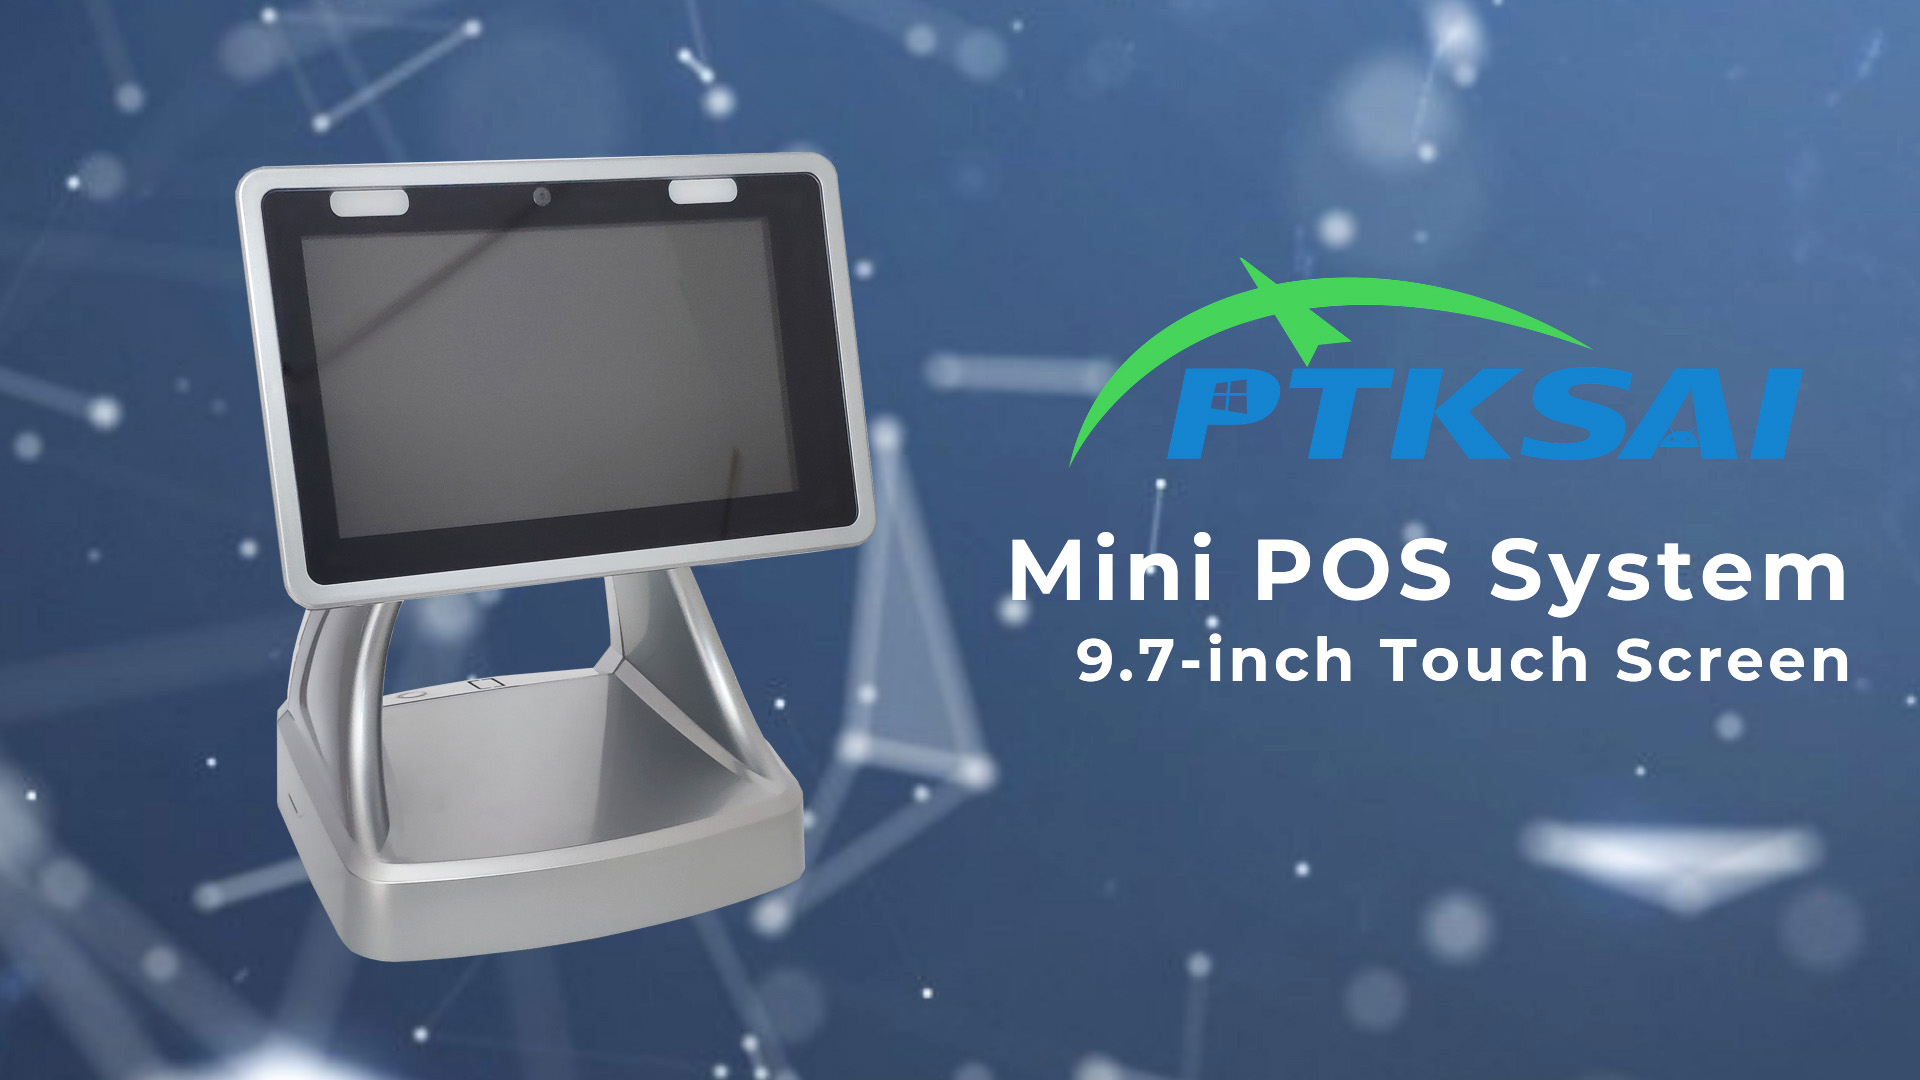 9.7-inch Touch Screen Mini POS System KS-C Design Quick Overview-PTKSAI